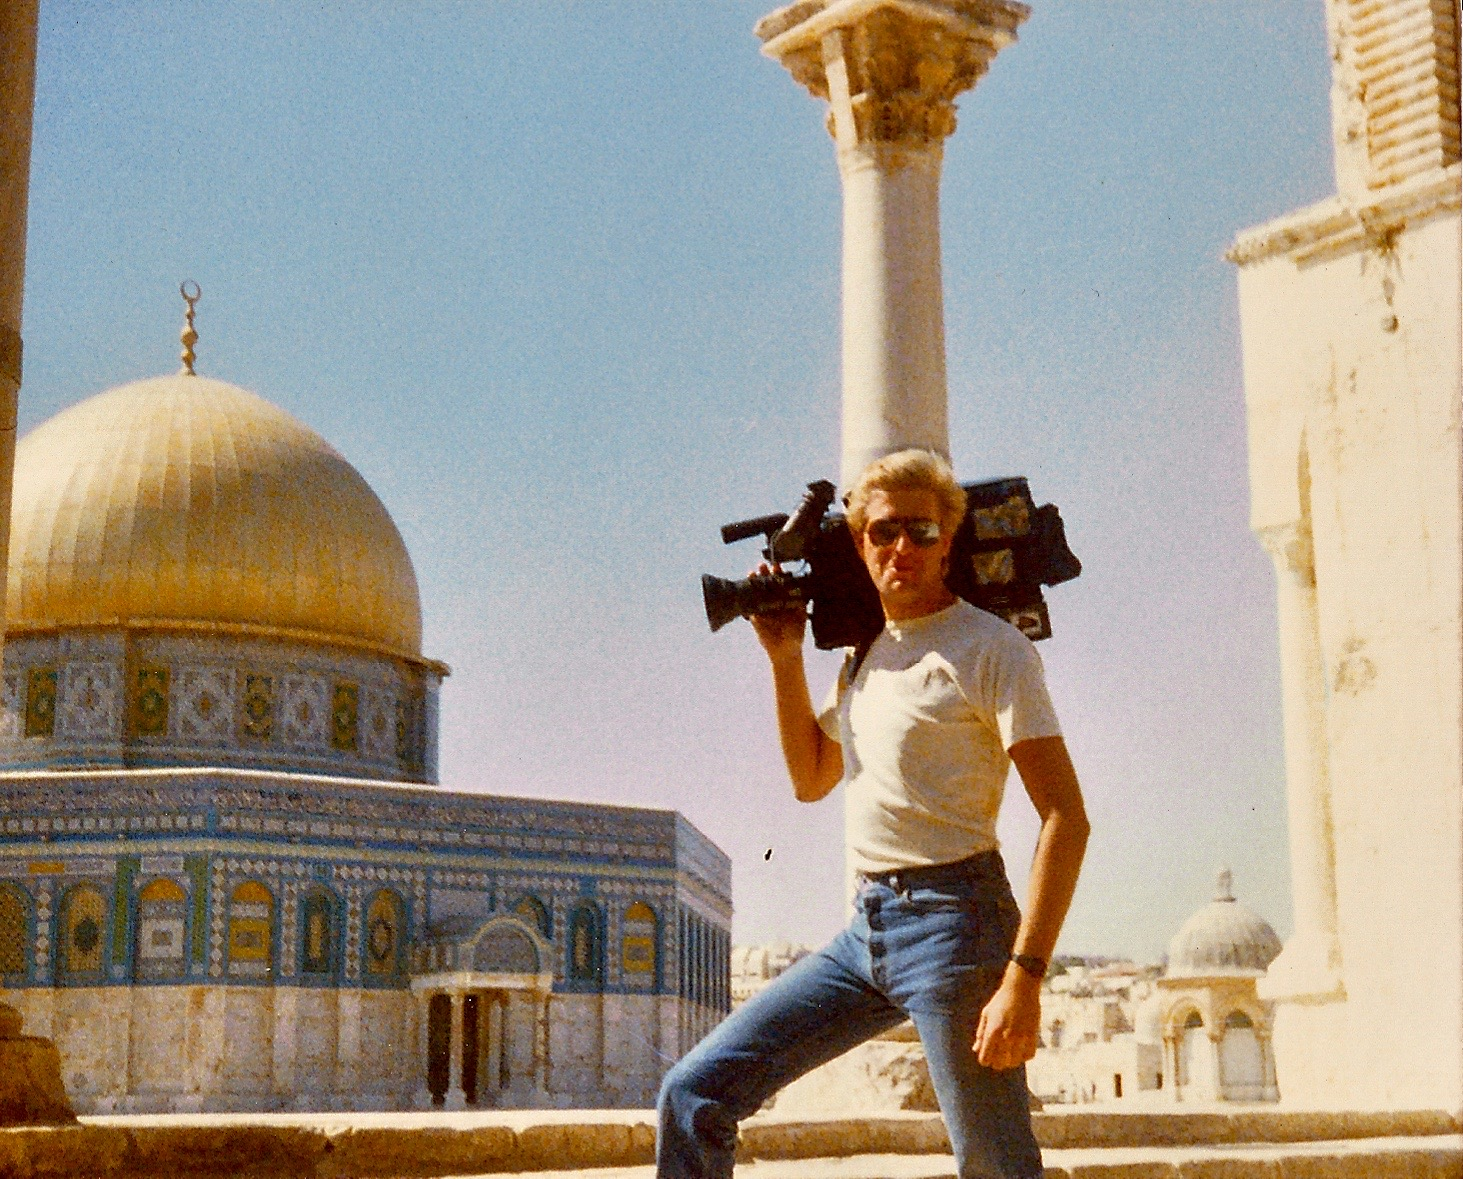 Body fat and muscle mass were of no interest to Jim in the late 80's. Jerusalem's Dome of the Rock was.